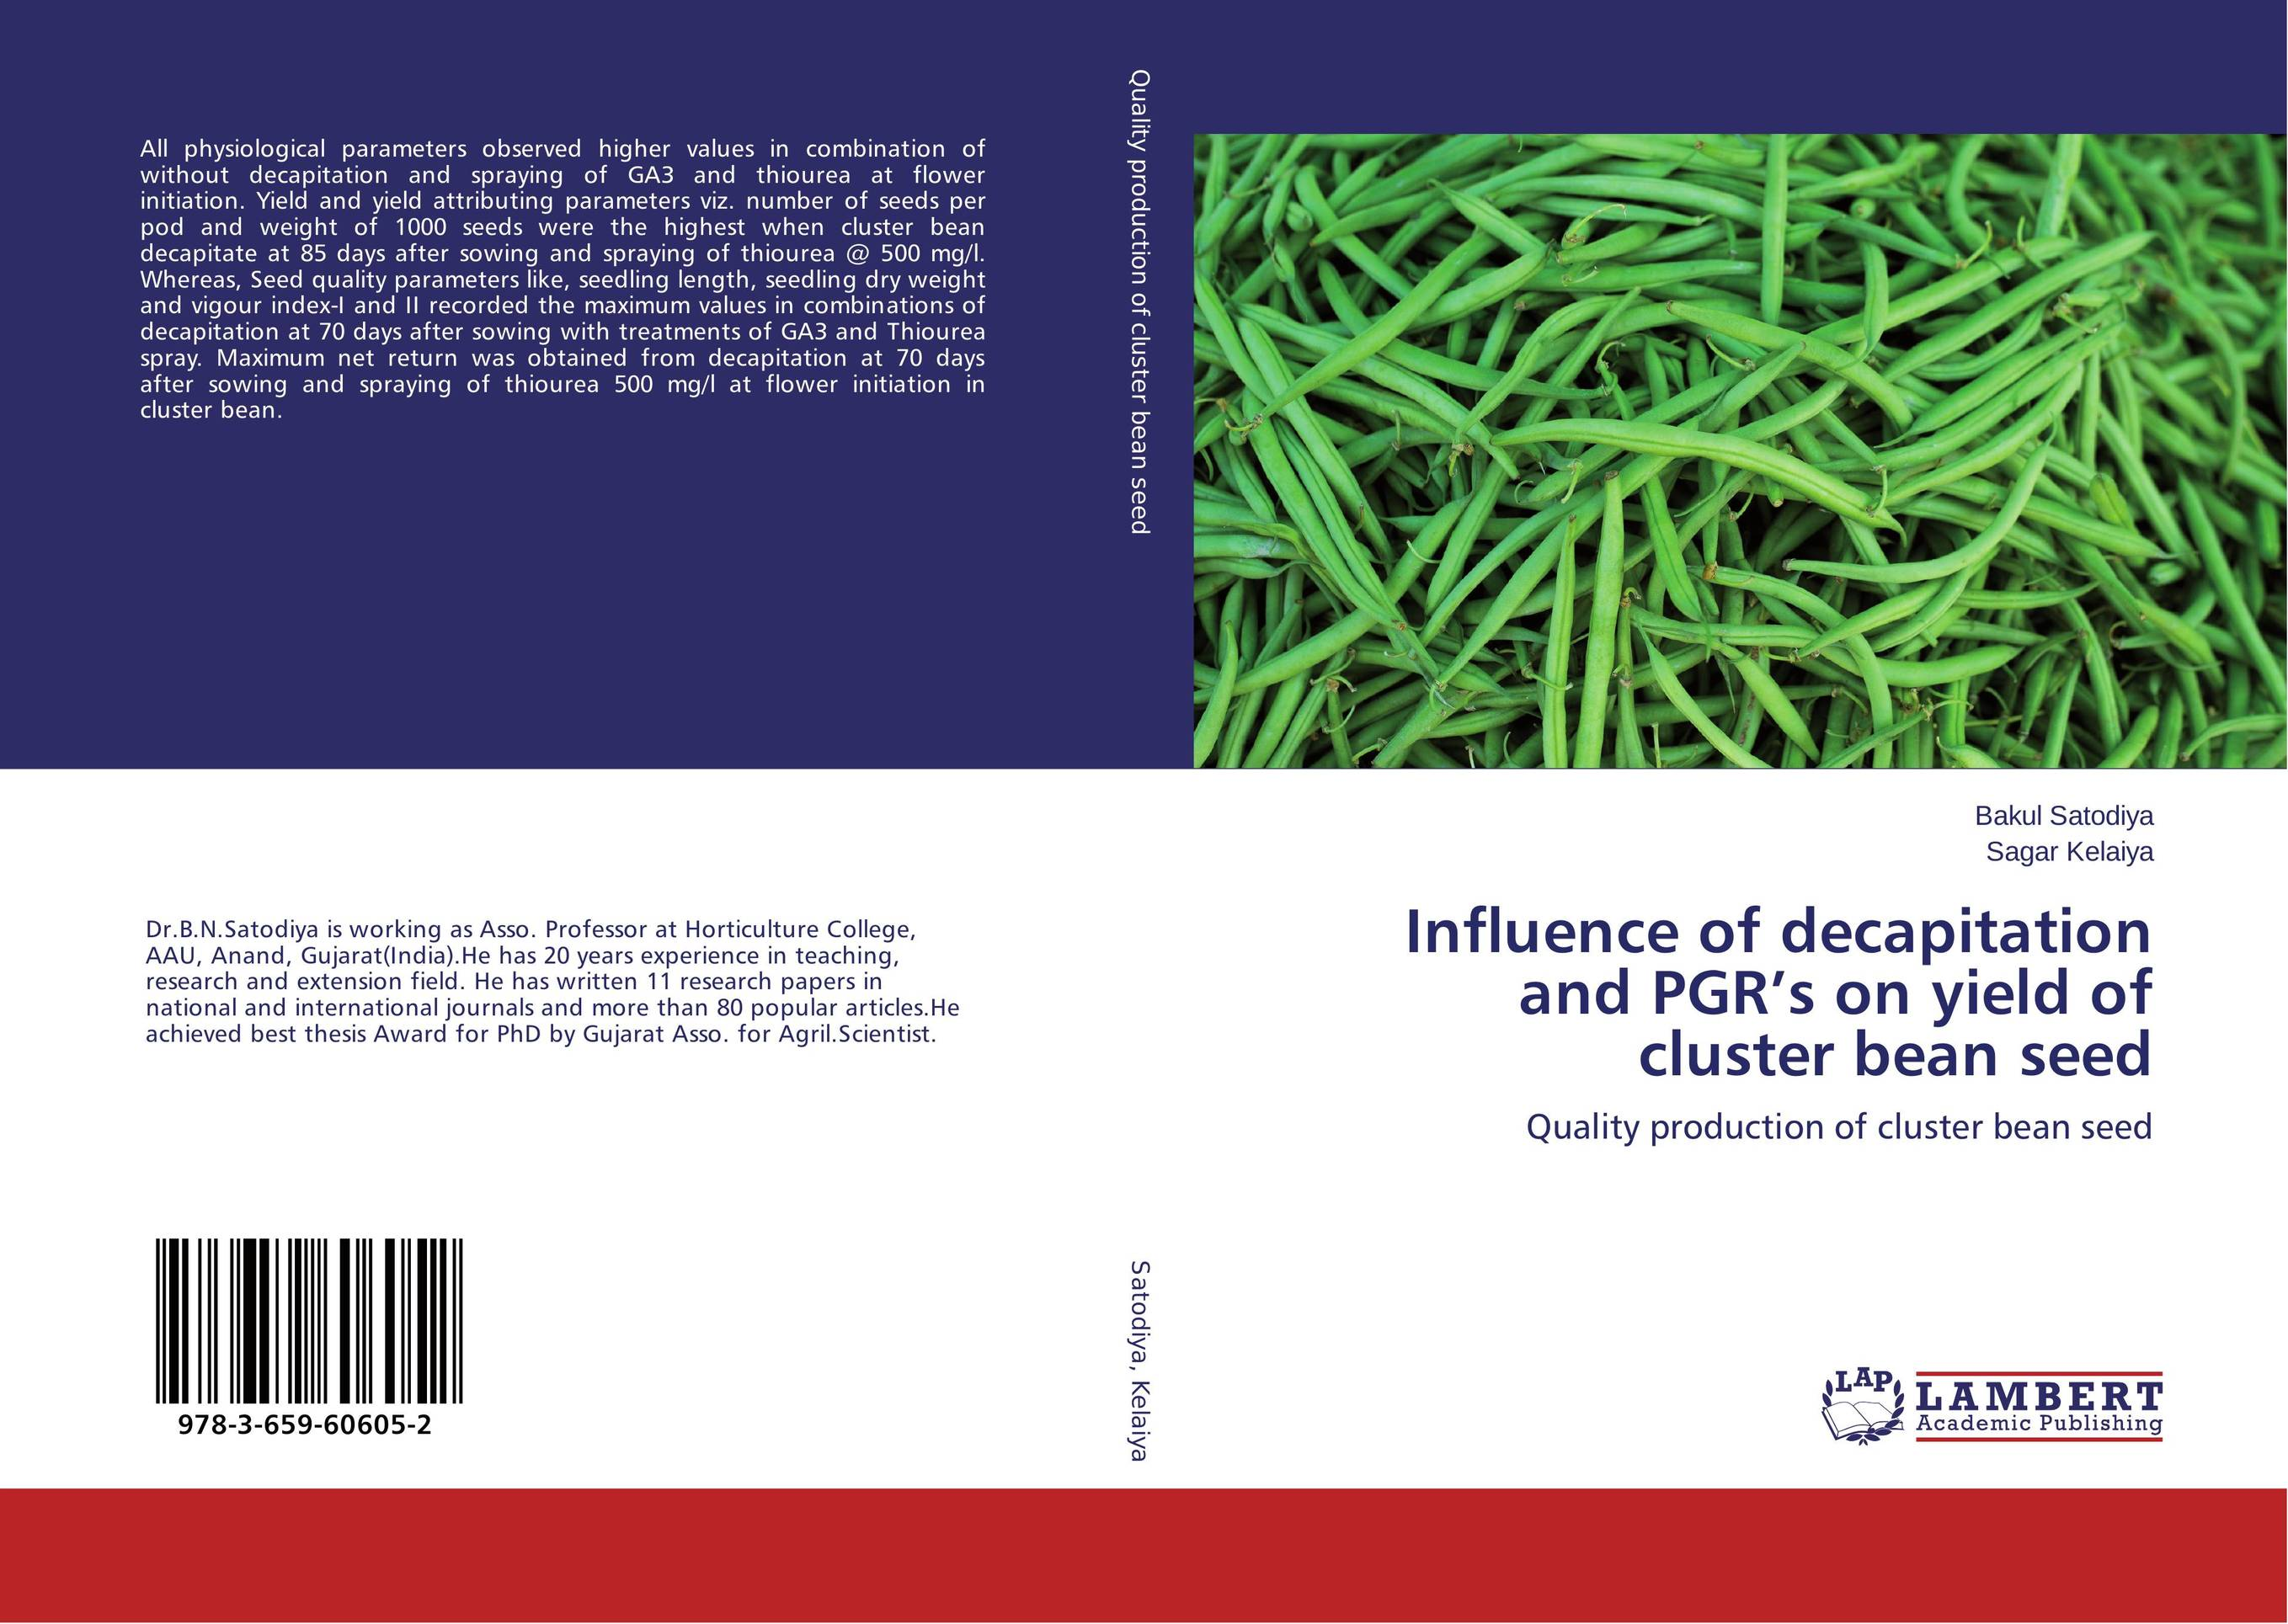 Influence of decapitation and PGR's on yield of cluster bean seed demdeo durge physical fitness and physiological parameters of sport persons